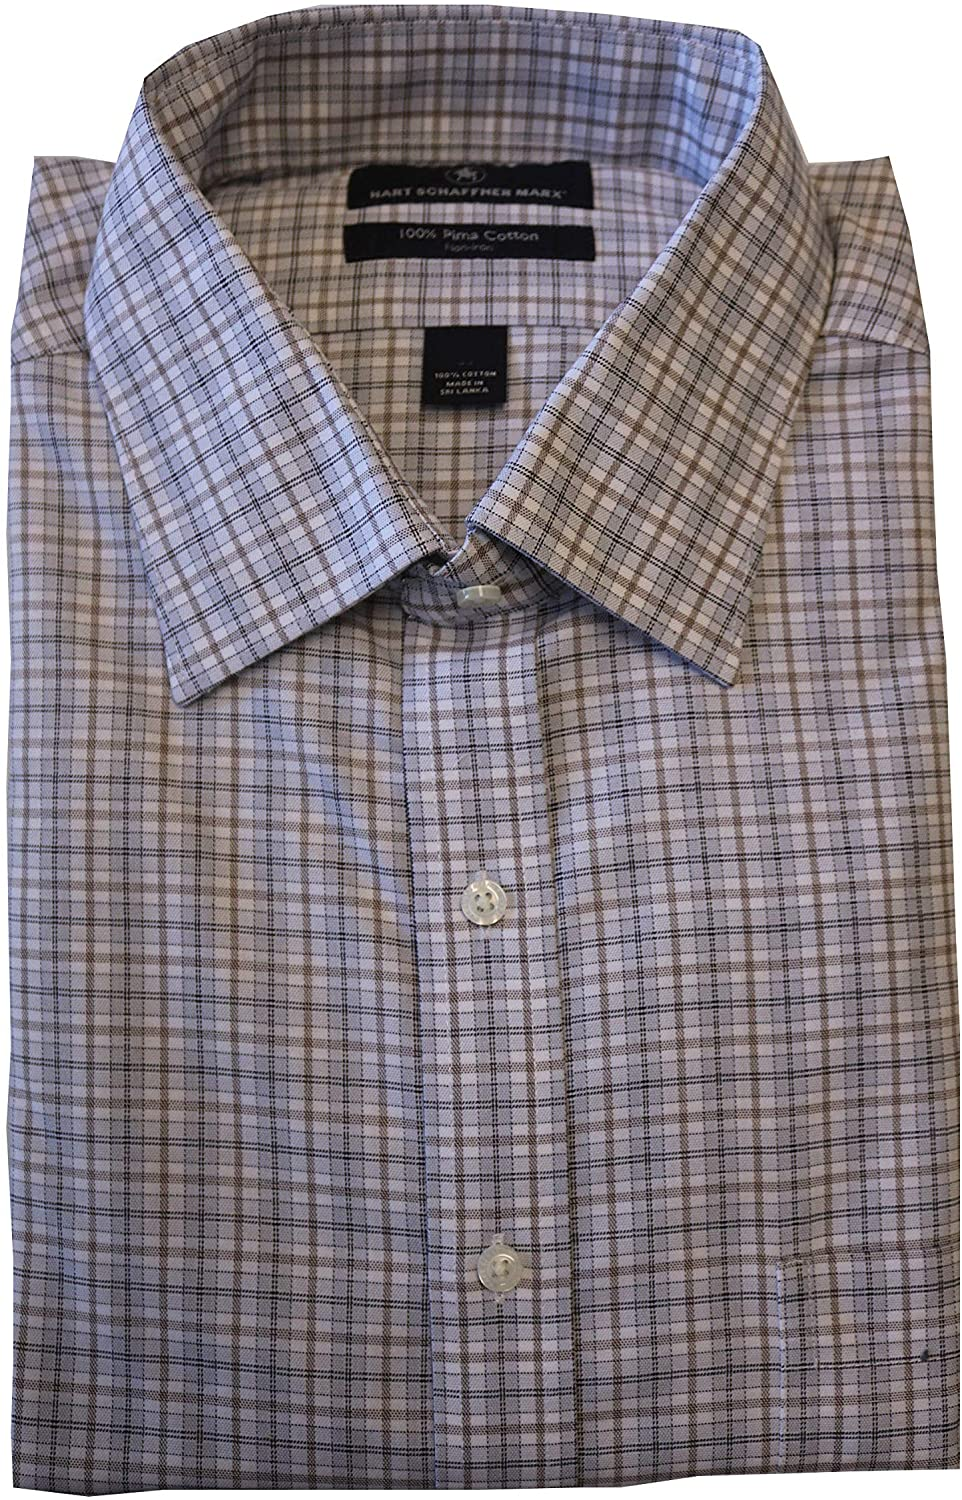 Hart Schaffner Marx Non Iron Classic Fit Plaid and Check Spread Collar Dress Shirt F85DI013 Tan Multi